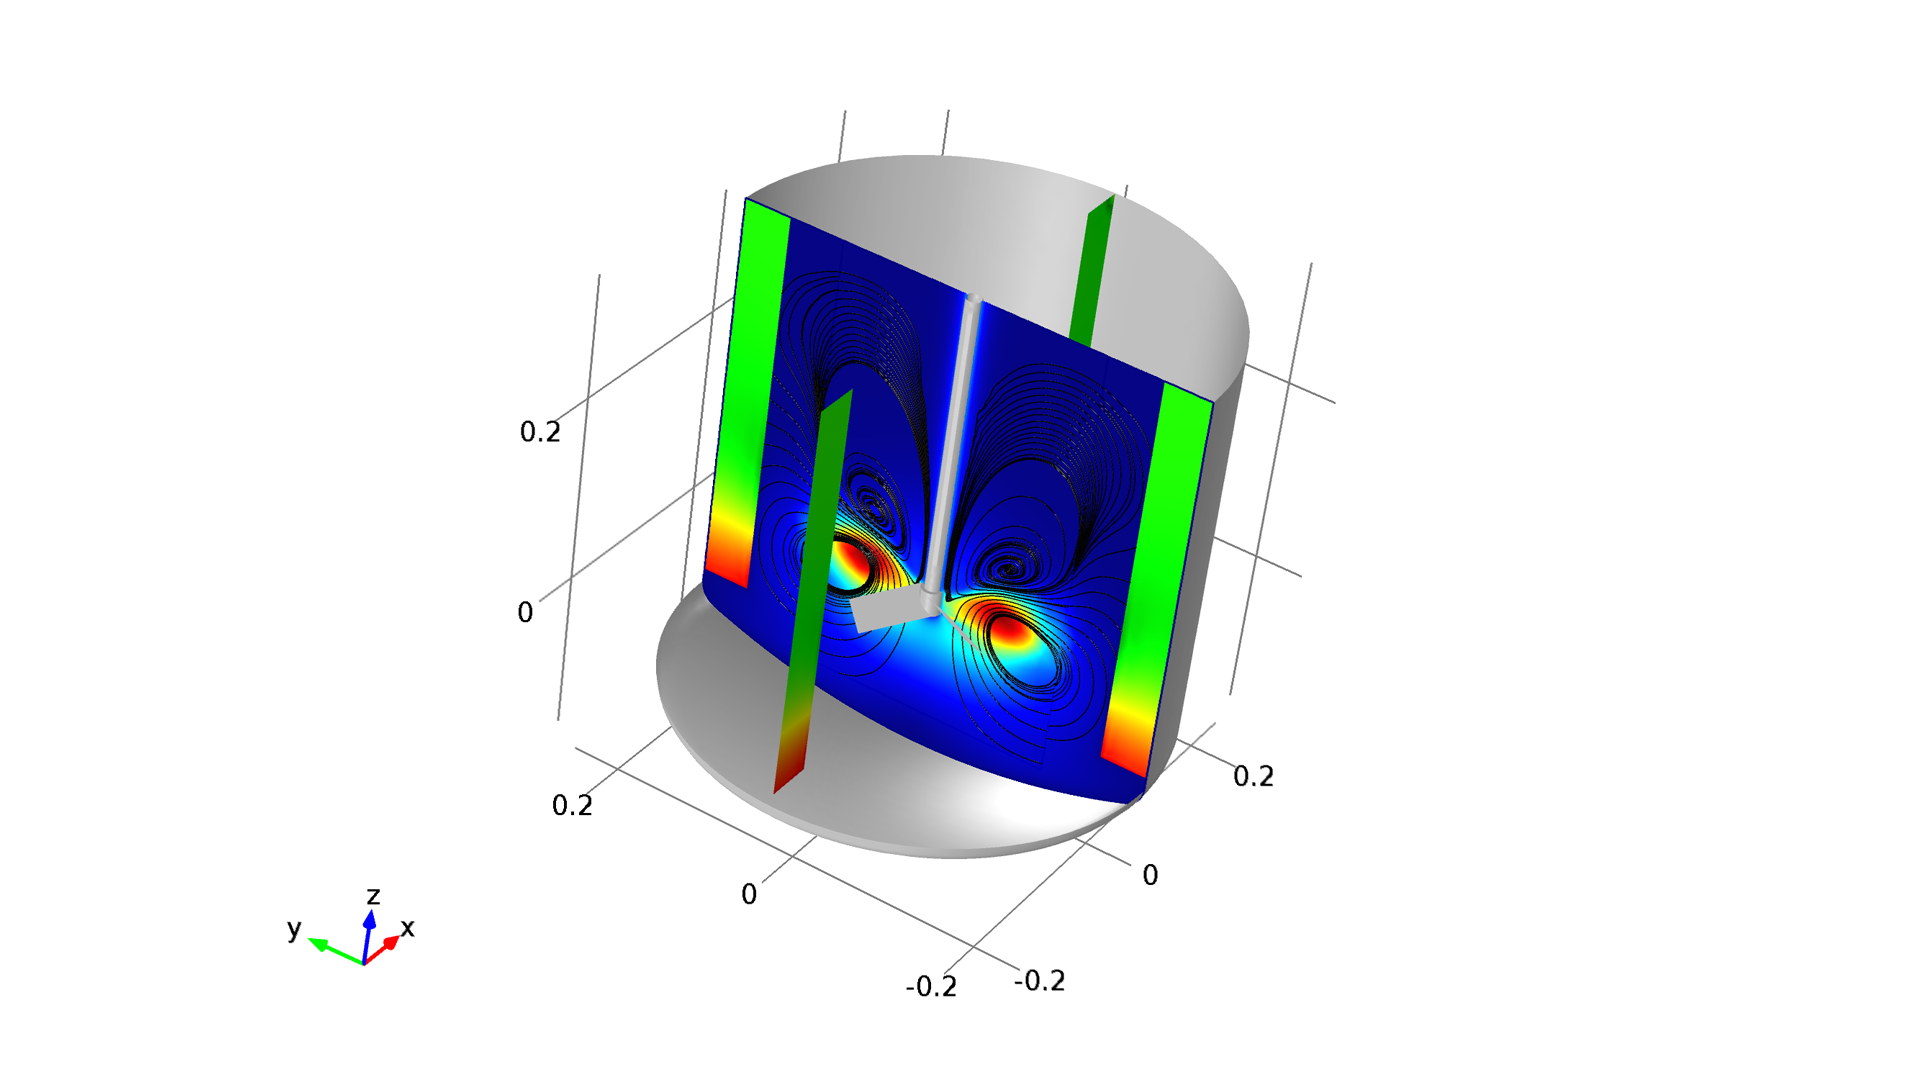 BAFFLED MIXER: Streamlines and velocity magnitude in a cross section of a dished bottom baffled mixer with a four-bladed impeller. The color scale on the baffles represents the pressure, the slice plot shows the modulus of the velocity vector, while the streamlines show the direction of flow.